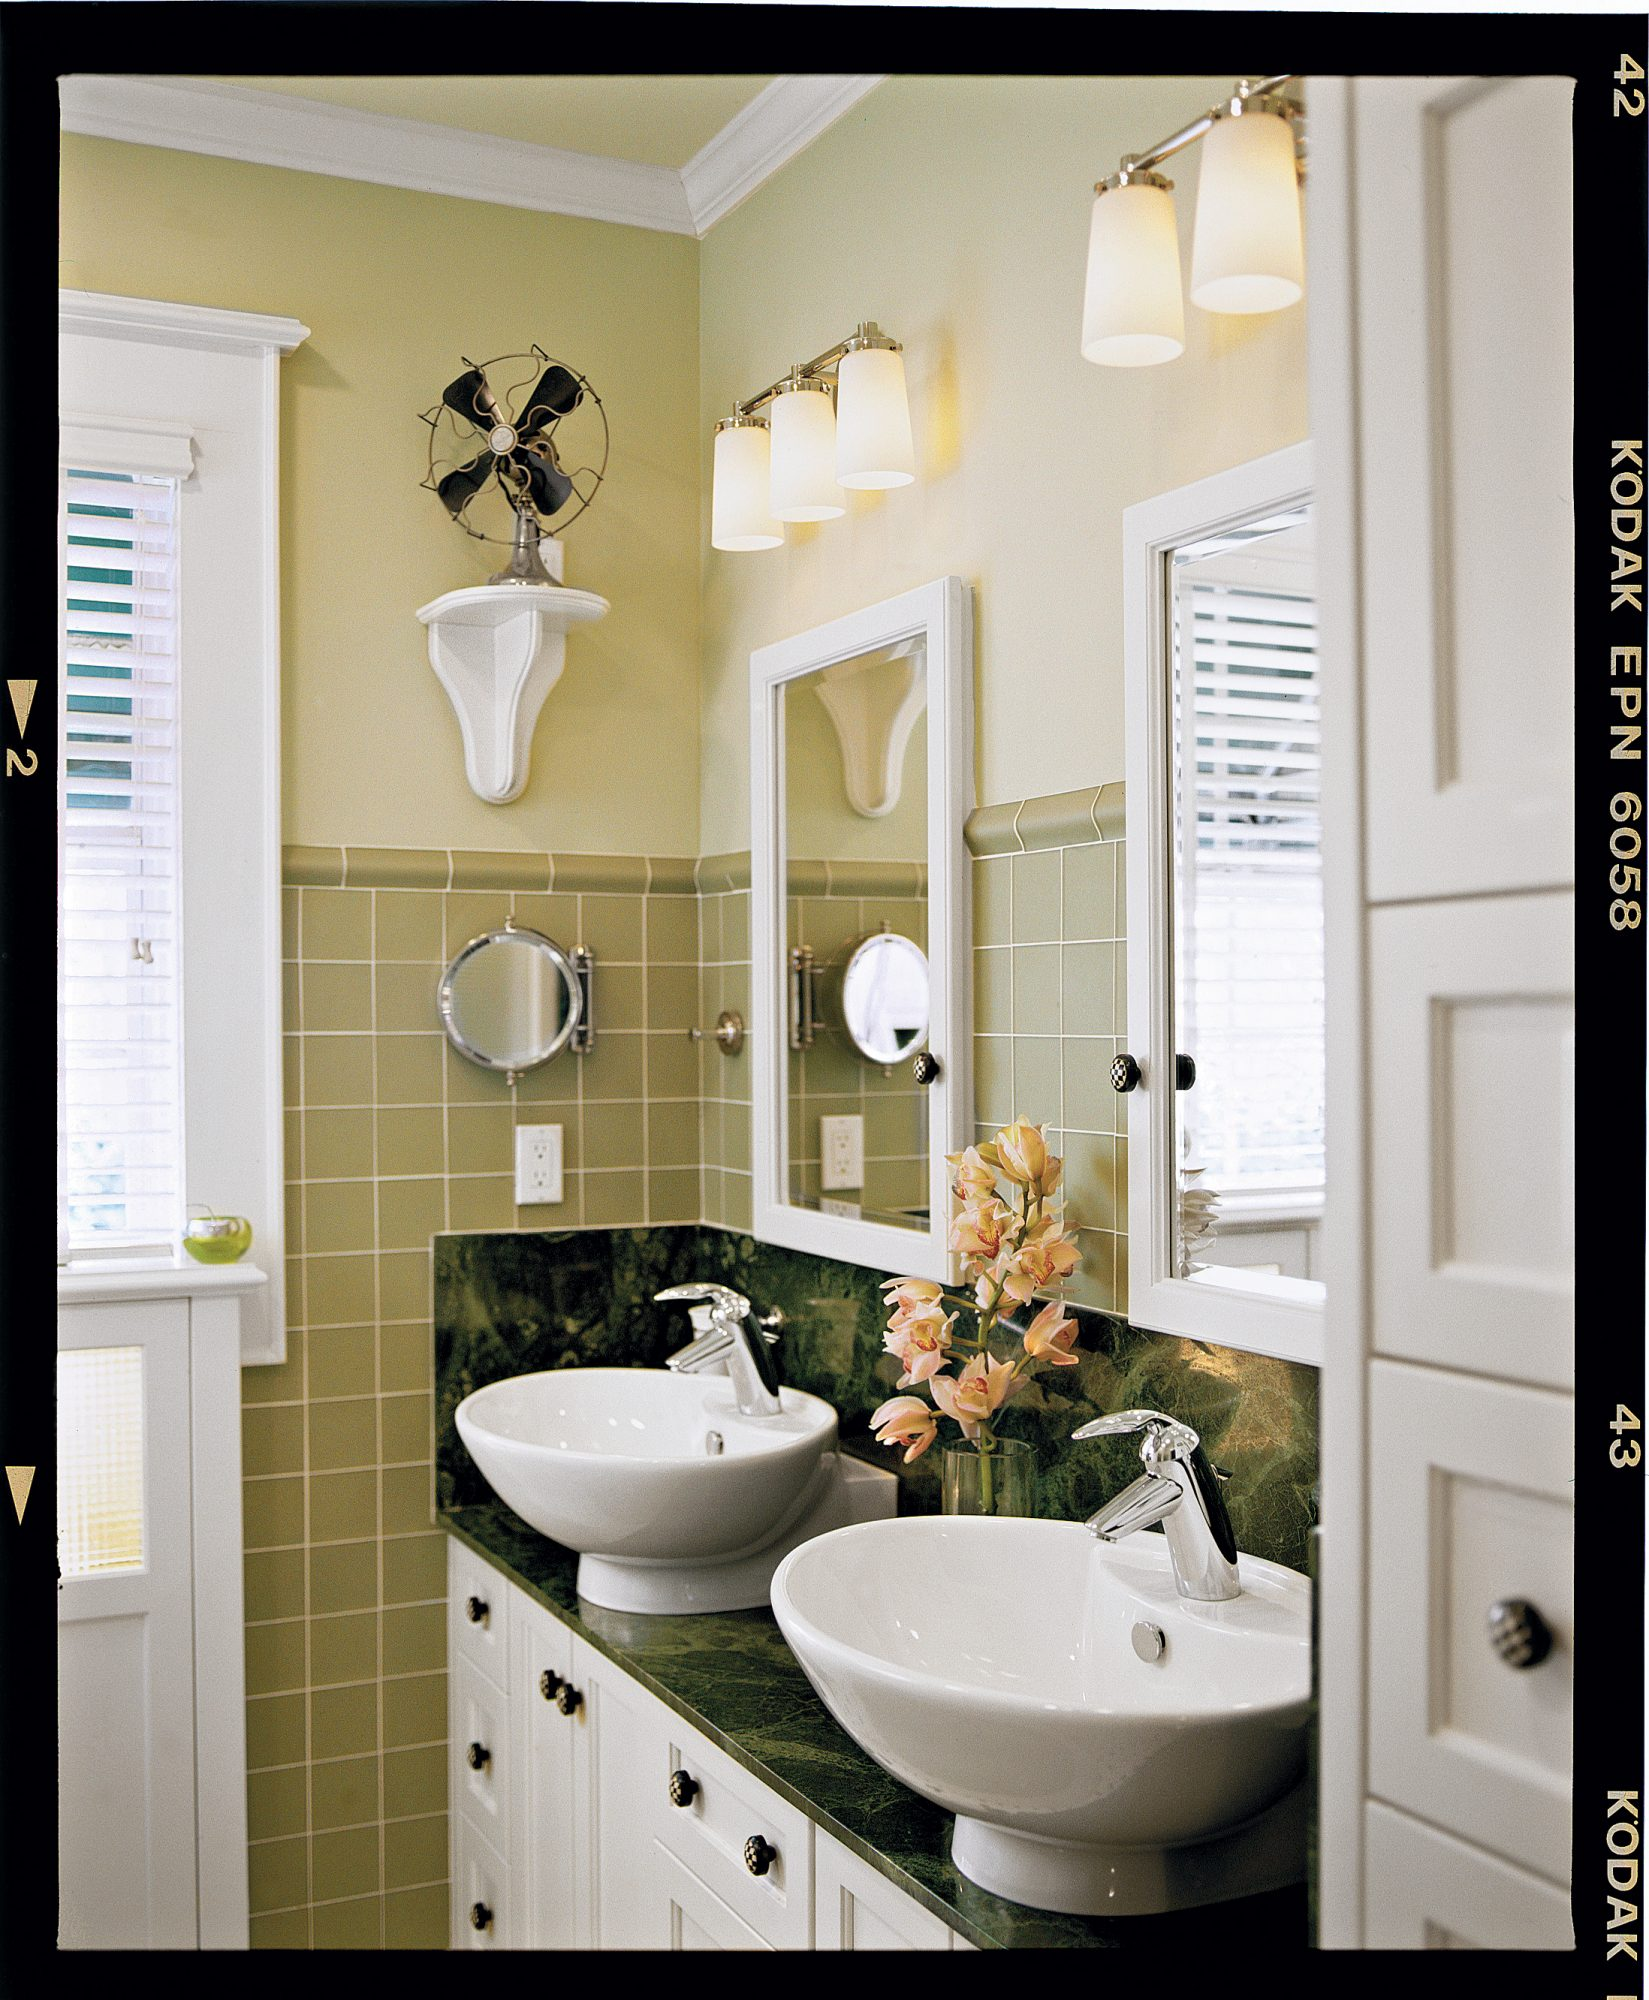 5 space saving ideas for small baths southern living for Southern bathroom ideas